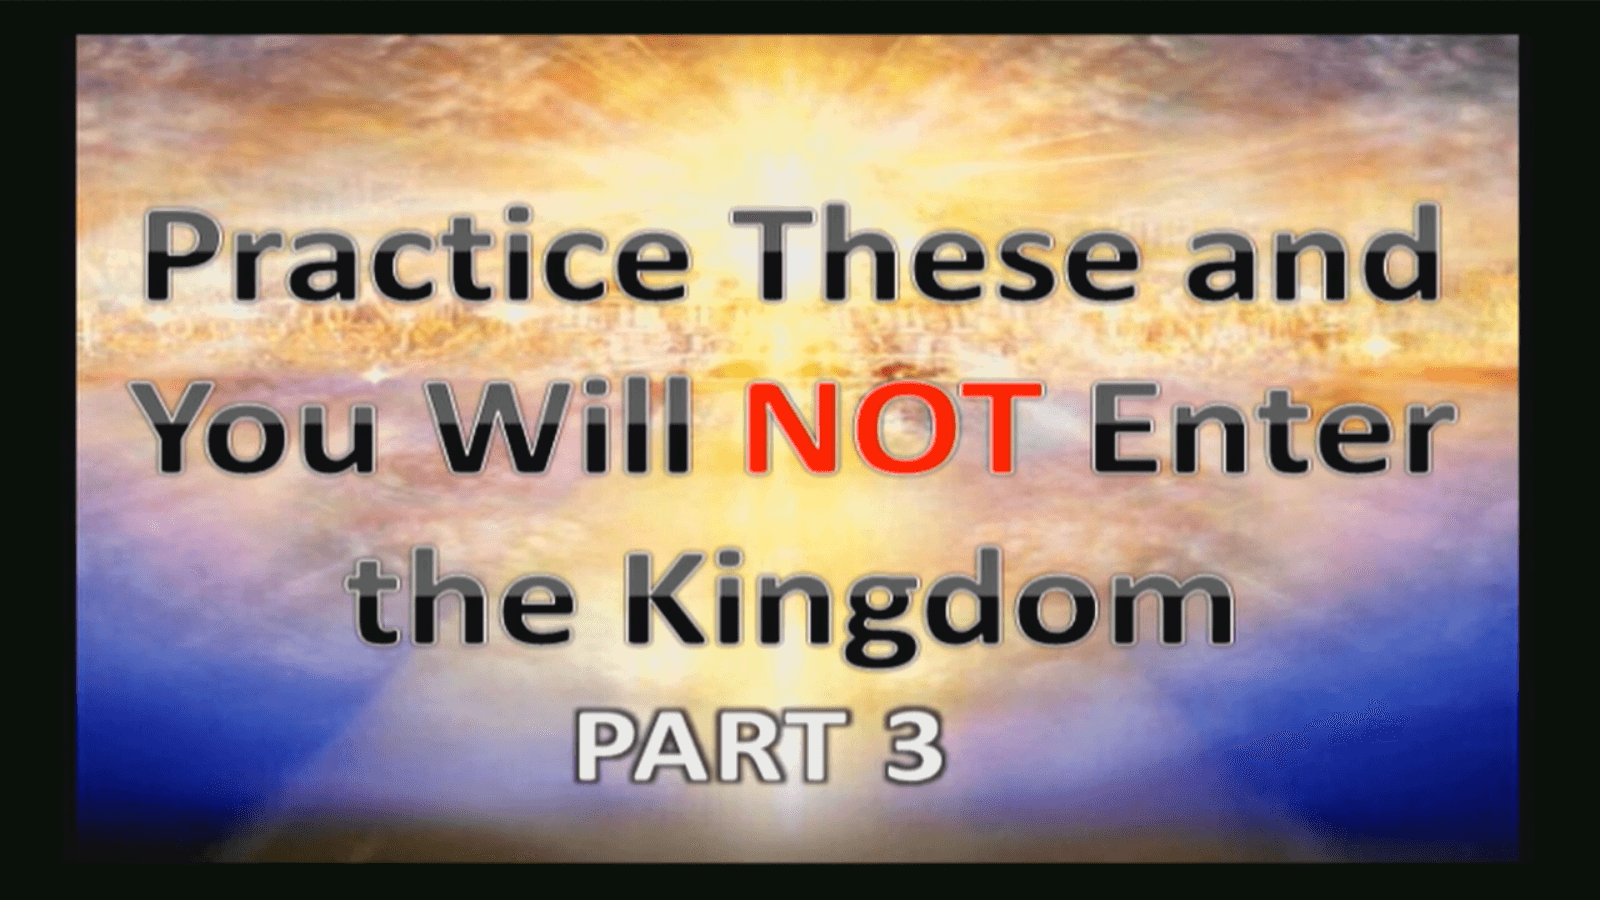 Practice These and You will NOT Enter the Kingdom – Part 3